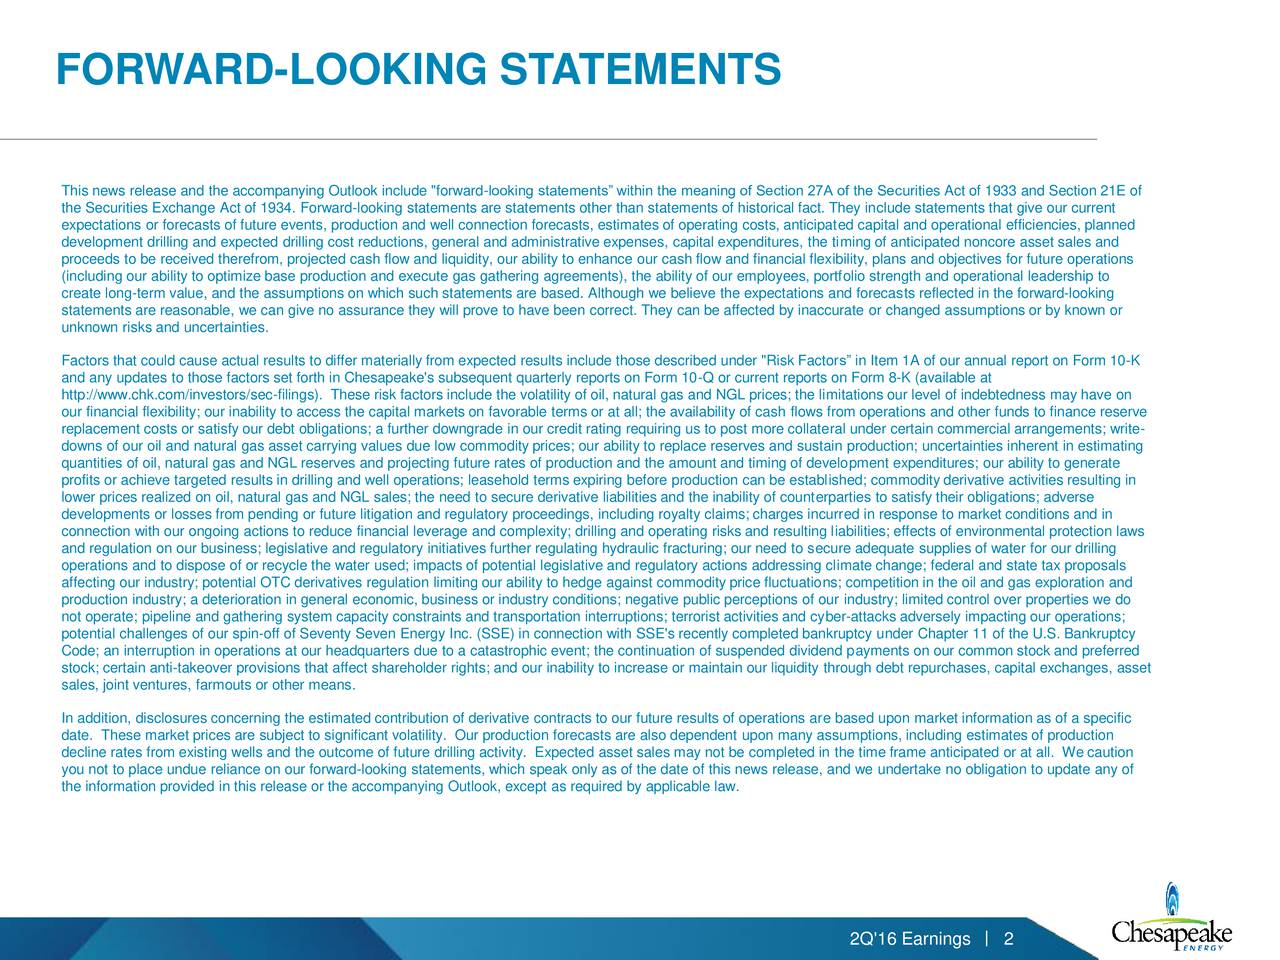 """This news release and the accompanying Outlook include """"forward-looking statements within the meaning of Section 27A of the Securities Act of 1933 and Section 21E of the Securities Exchange Act of 1934. Forward-looking statements are statements other than statements of historical fact. They include statements that give our current expectations or forecasts of future events, production and well connection forecasts, estimates of operating costs, anticipated capital and operational efficiencies, planned development drilling and expected drilling cost reductions, general and administrative expenses, capital expenditures, the timing of anticipated noncore asset sales and proceeds to be received therefrom, projected cash flow and liquidity, our ability to enhance our cash flow and financial flexibility, plans and objectives for future operations (including our ability to optimize base production and execute gas gathering agreements), the ability of our employees, portfolio strength and operational leadership to create long-term value, and the assumptions on which such statements are based. Although we believe the expectations and forecasts reflected in the forward-looking statements are reasonable, we can give no assurance they will prove to have been correct. They can be affected by inaccurate or changed assumptions or by known or unknown risks and uncertainties. Factors that could cause actual results to differ materially from expected results include those described under """"Risk Factors in Item 1A of our annual report on Form 10-K and any updates to those factors set forth in Chesapeake's subsequent quarterly reports on Form 10-Q or current reports on Form 8-K (available at http://www.chk.com/investors/sec-filings). These risk factors include the volatility of oil, natural gas and NGL prices; the limitations our level of indebtedness may have on our financial flexibility; our inability to access the capital markets on favorable terms or at all; the availability of cash"""